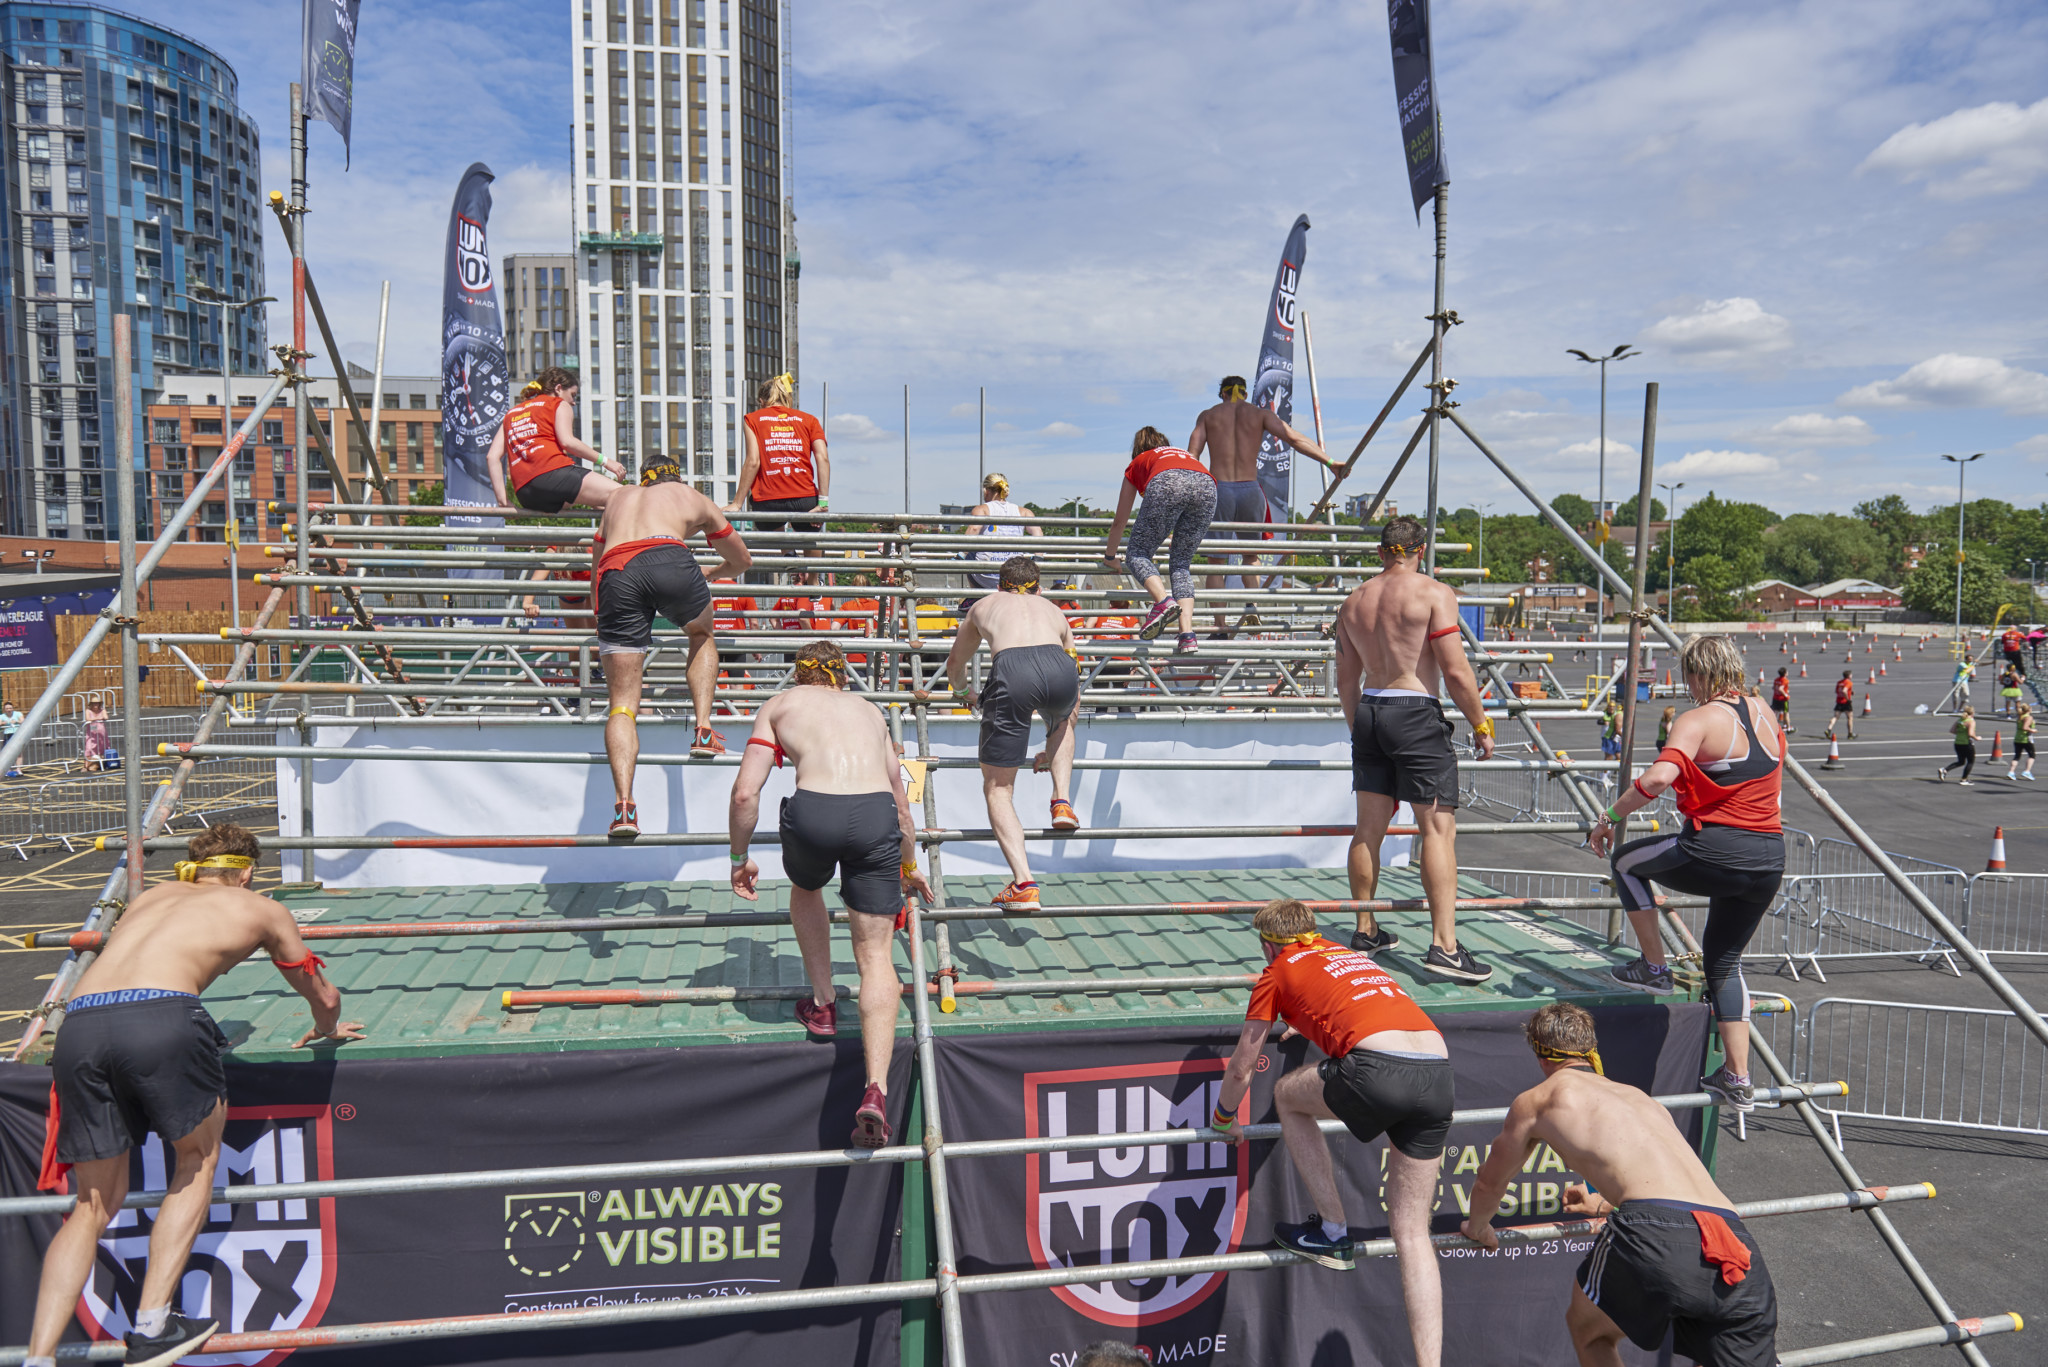 Men's Health Survival of the Fittest 2017, Wembley, London – 8 July 2017